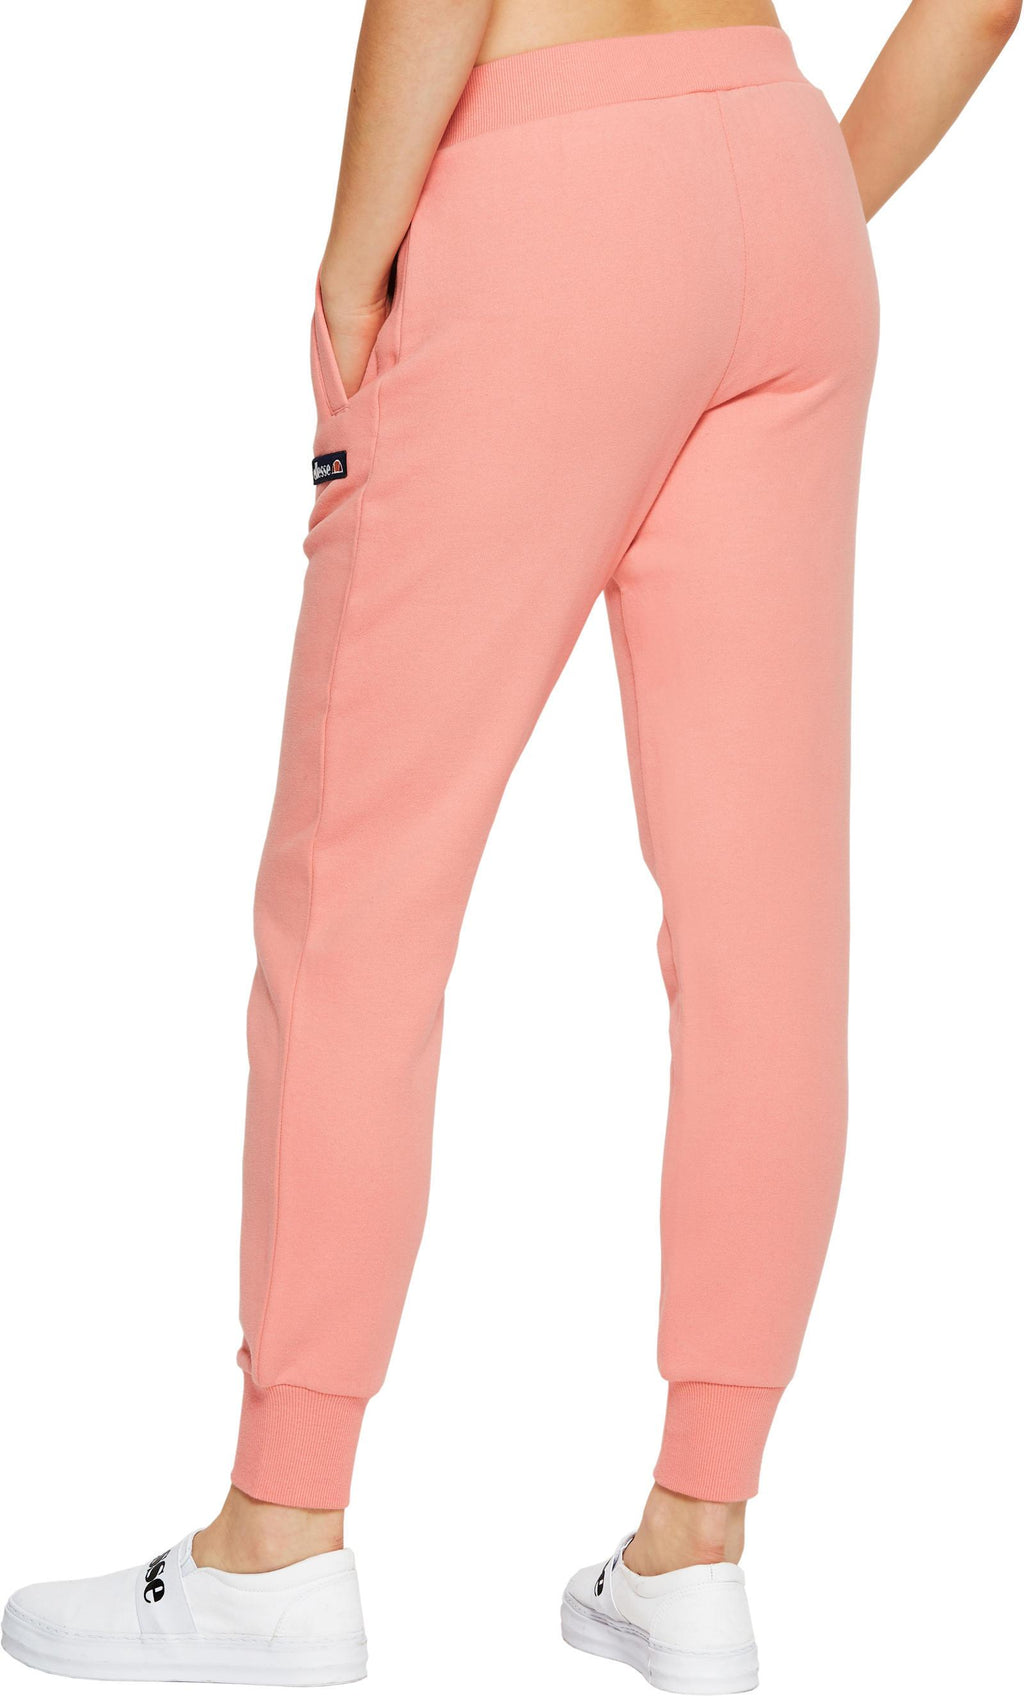 Ellesse Women's Sanatra Sweat Pants Jogger Bottoms Pink